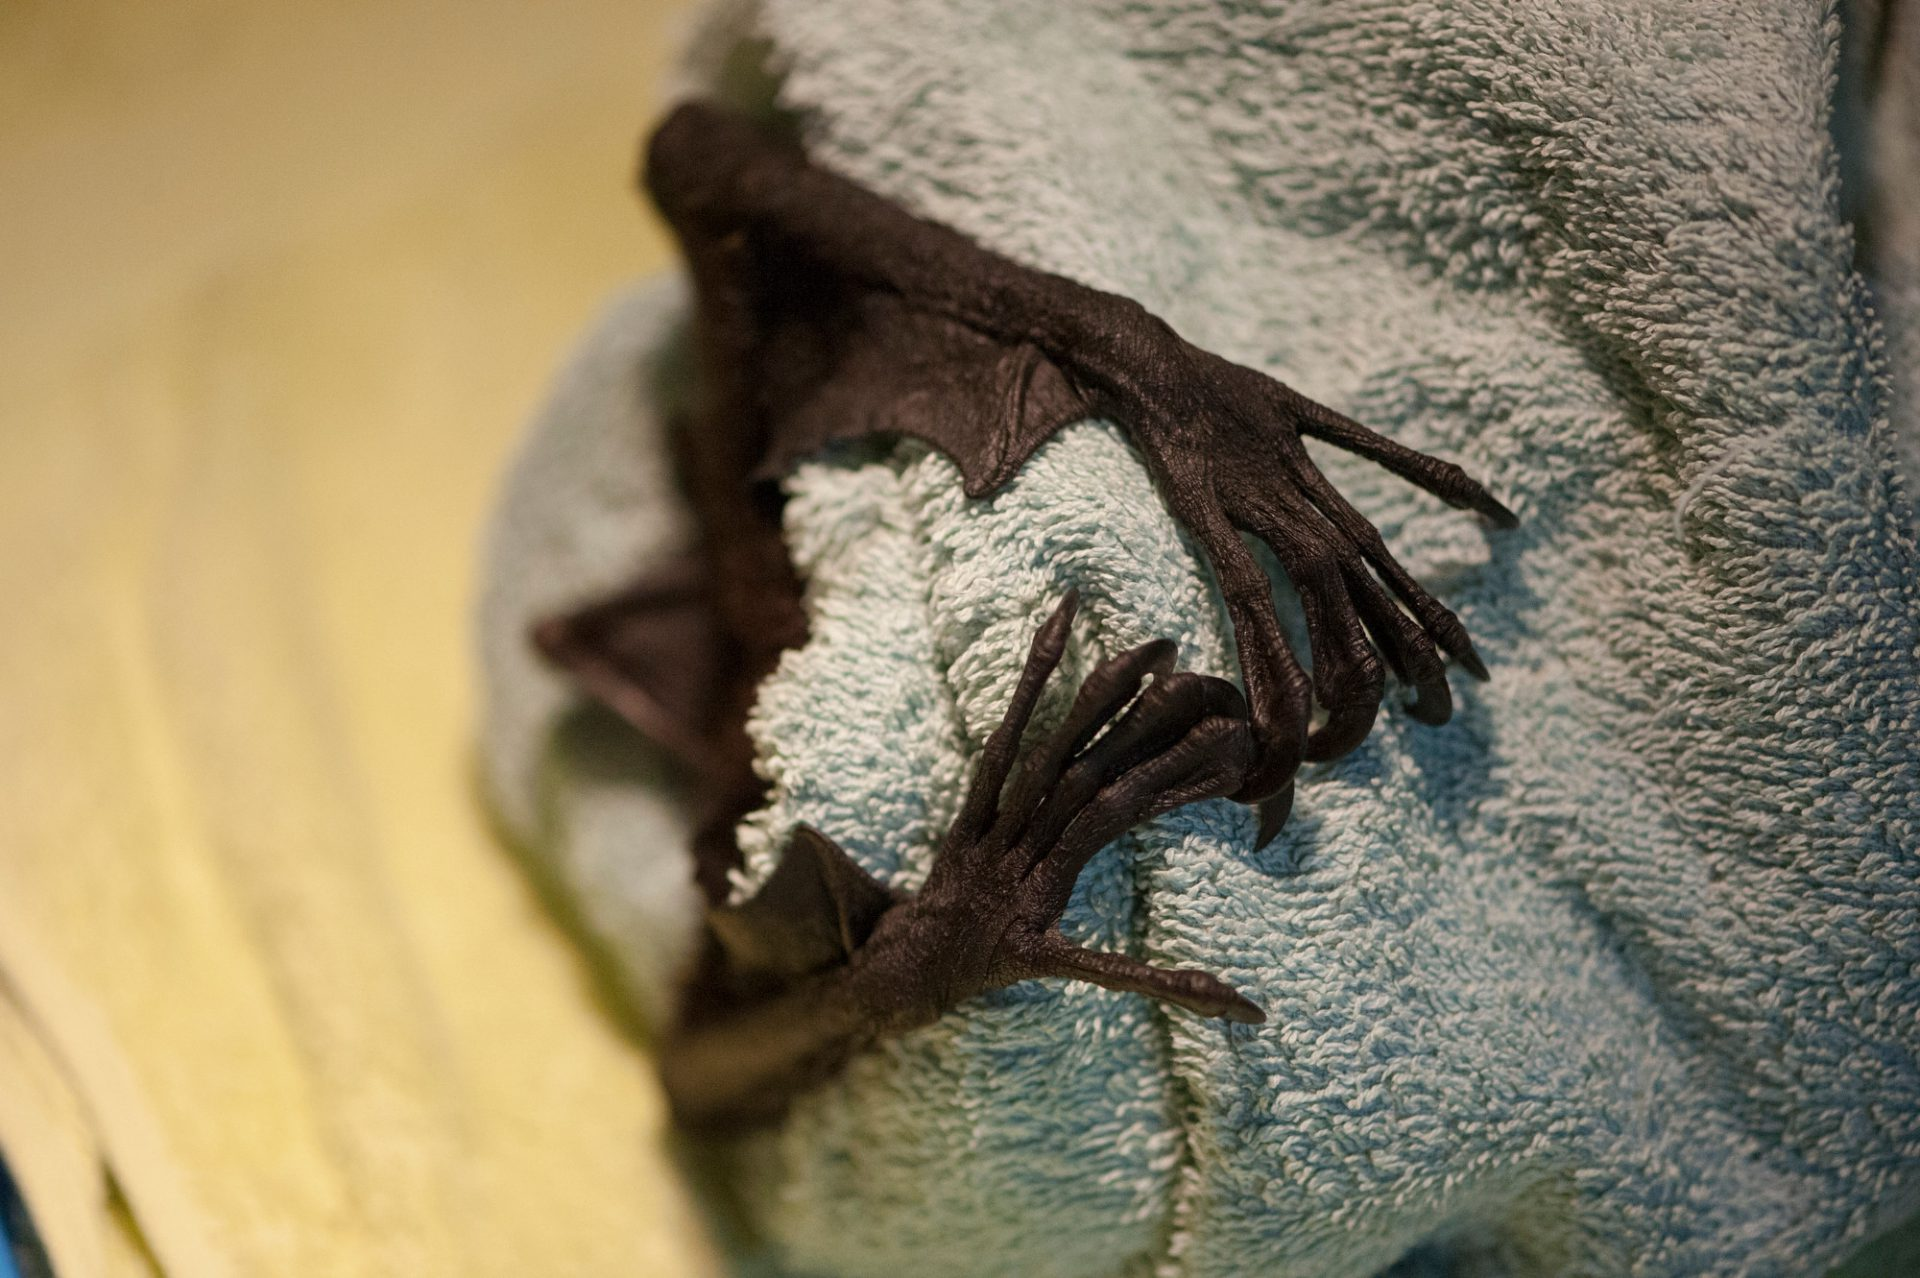 The fingers from a black flying fox (Pteropus alecto) during surgery.